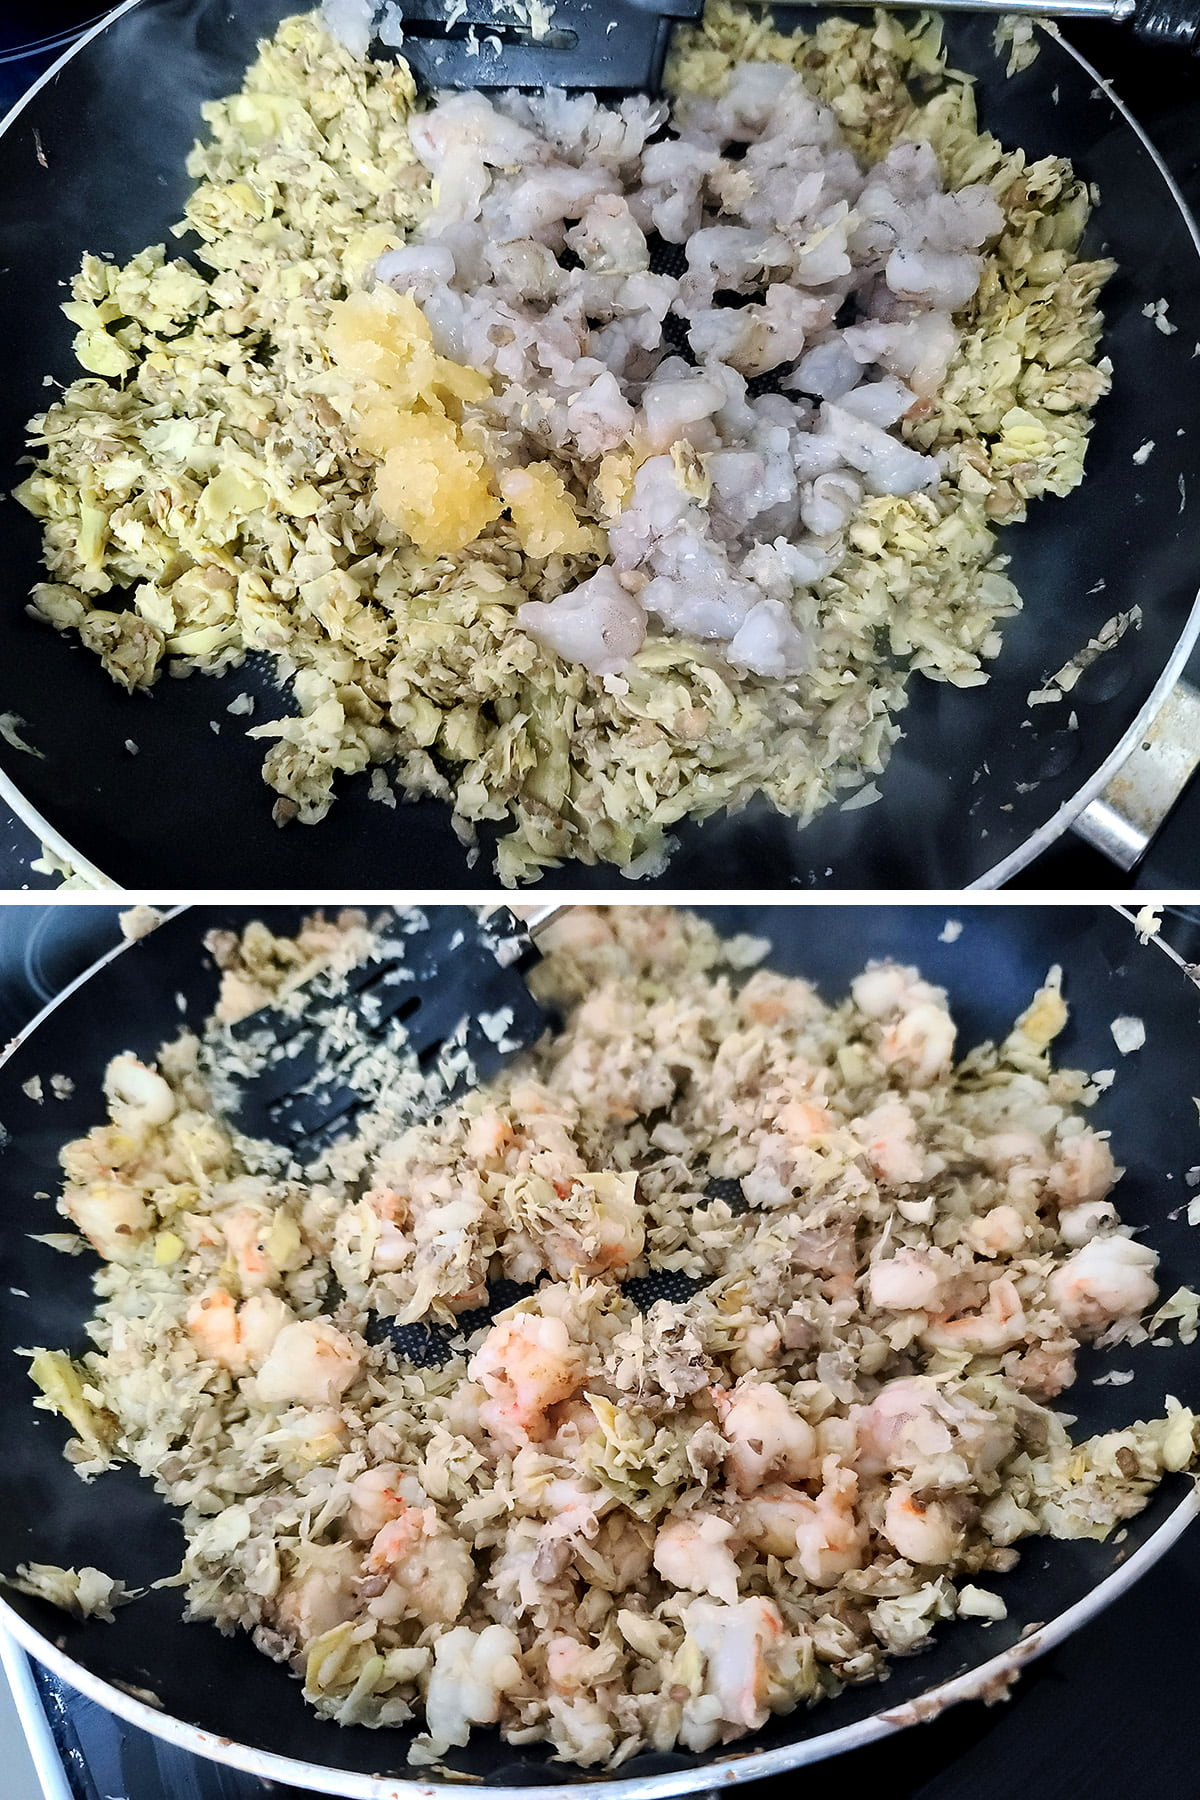 A two part compilation image showing shrimp and garlic being added to the frying pan, and the mixture being cooked together.